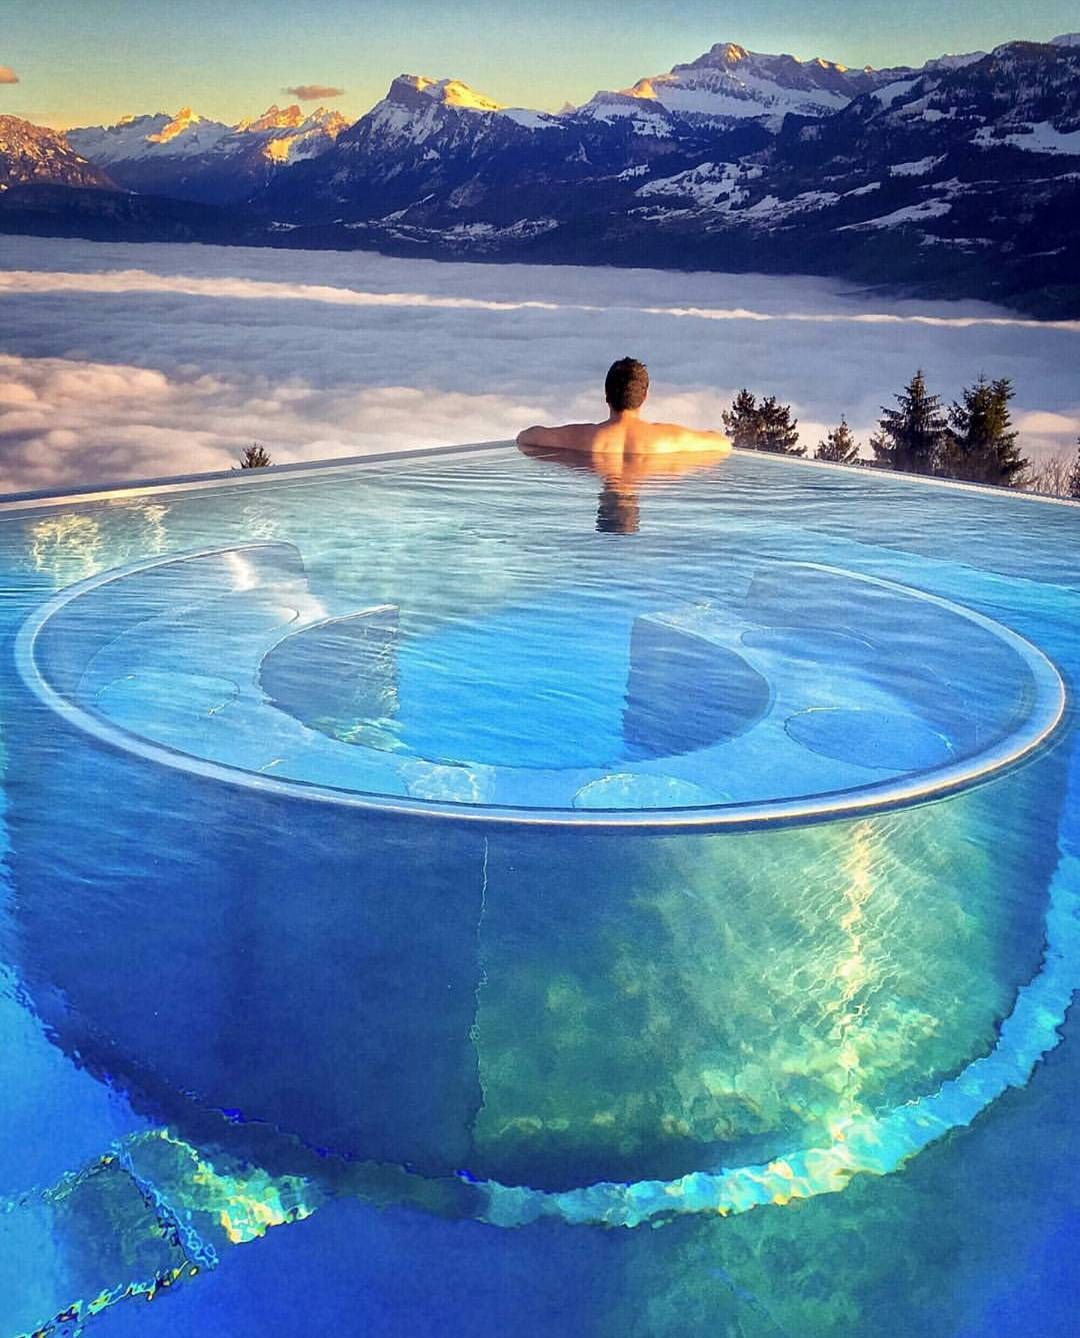 Best Hotel In Switzerland With Infinity Pool Hotel Villa Honegg Above The Clouds Sennarelax Hotel Villa Honegg Villa Honegg Switzerland Hotels